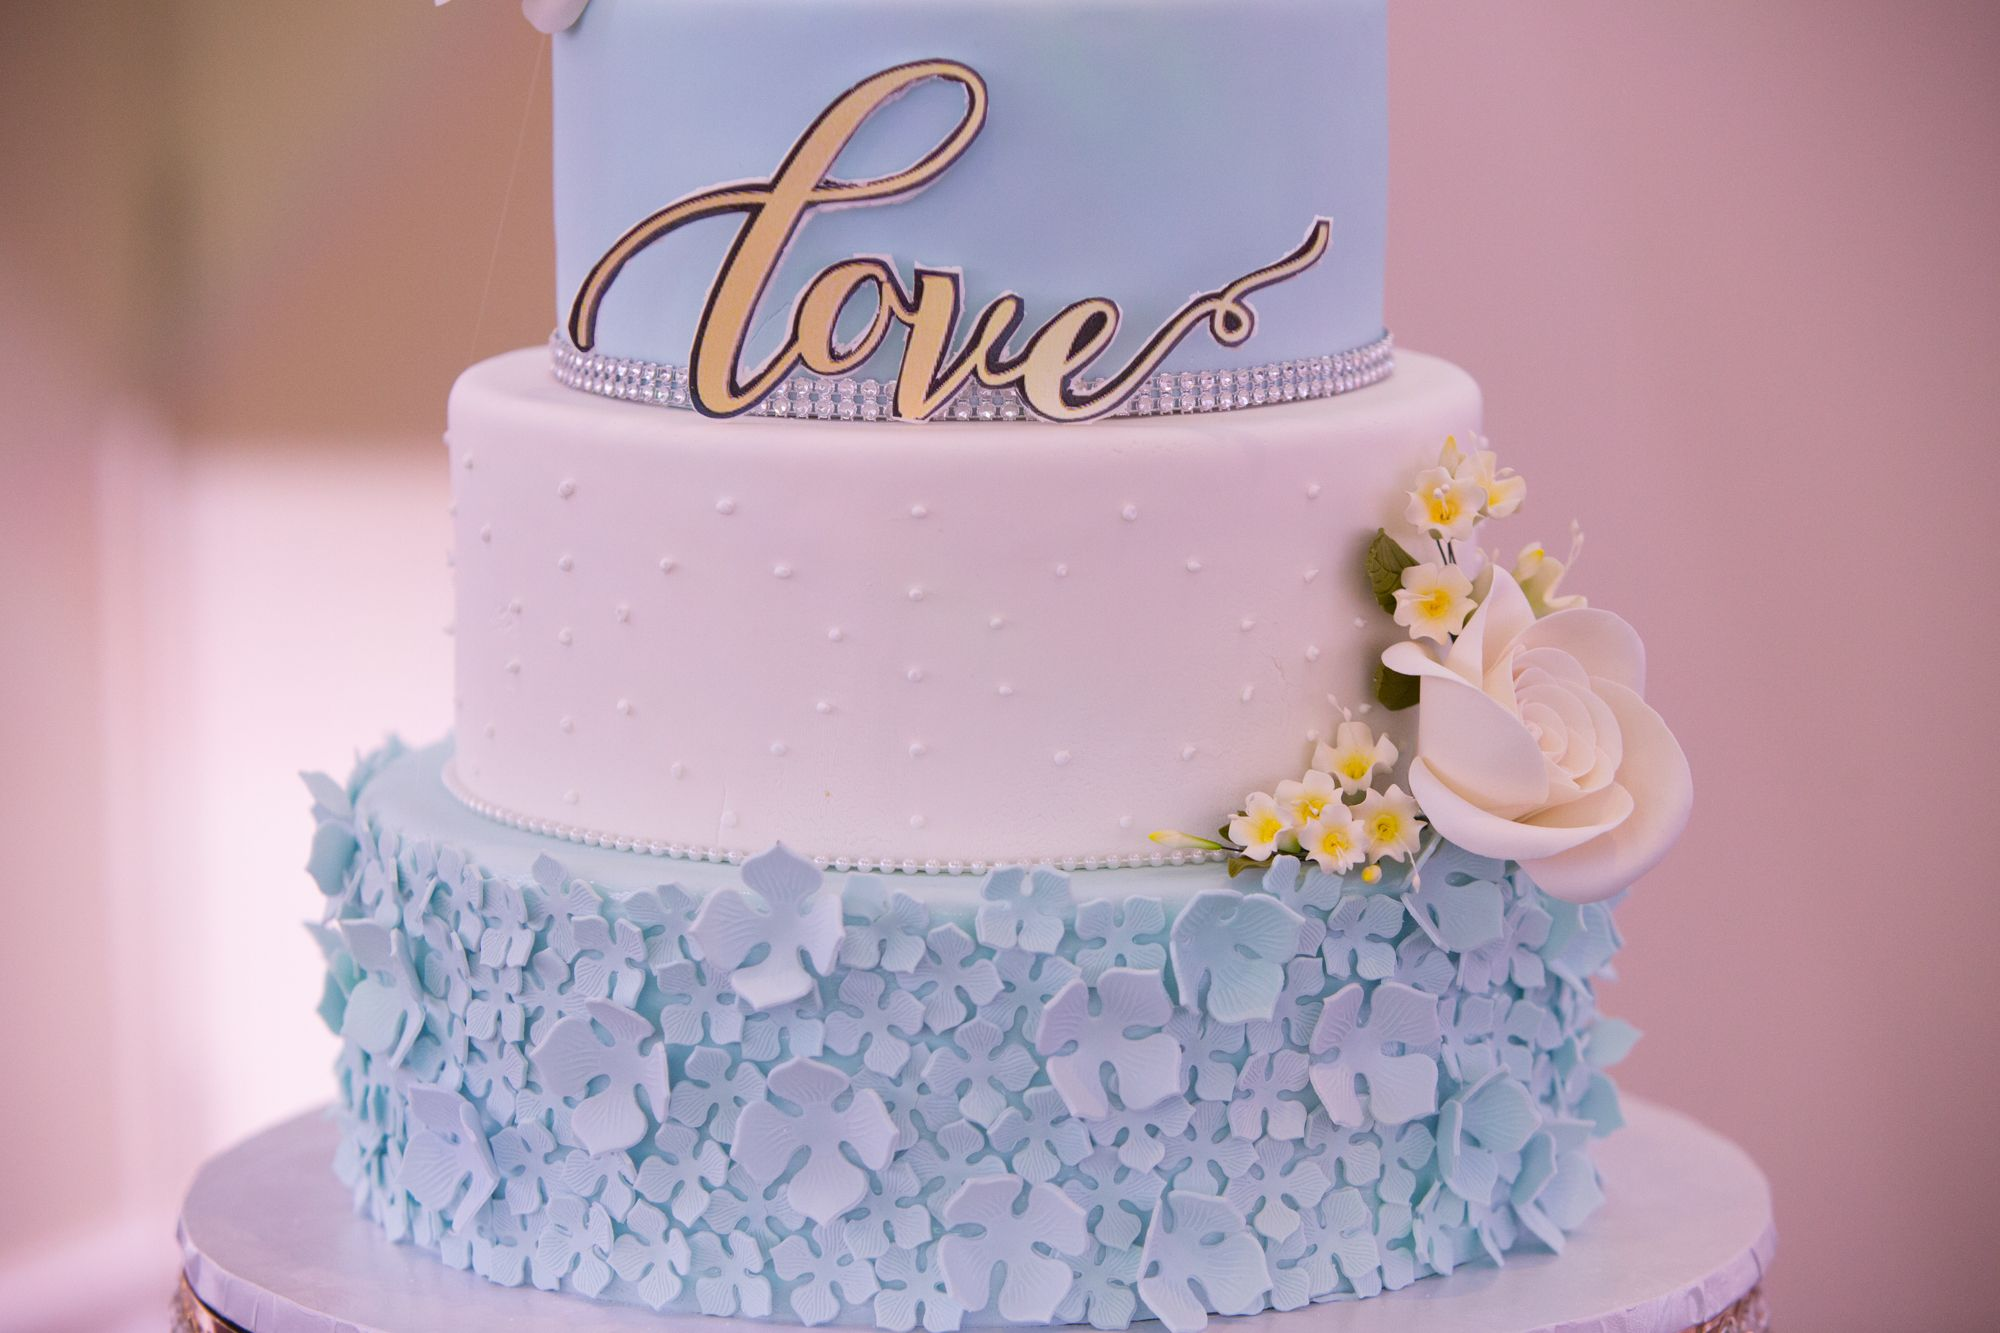 In-house Wedding Cake. Paradise Banquet Hall Weddings